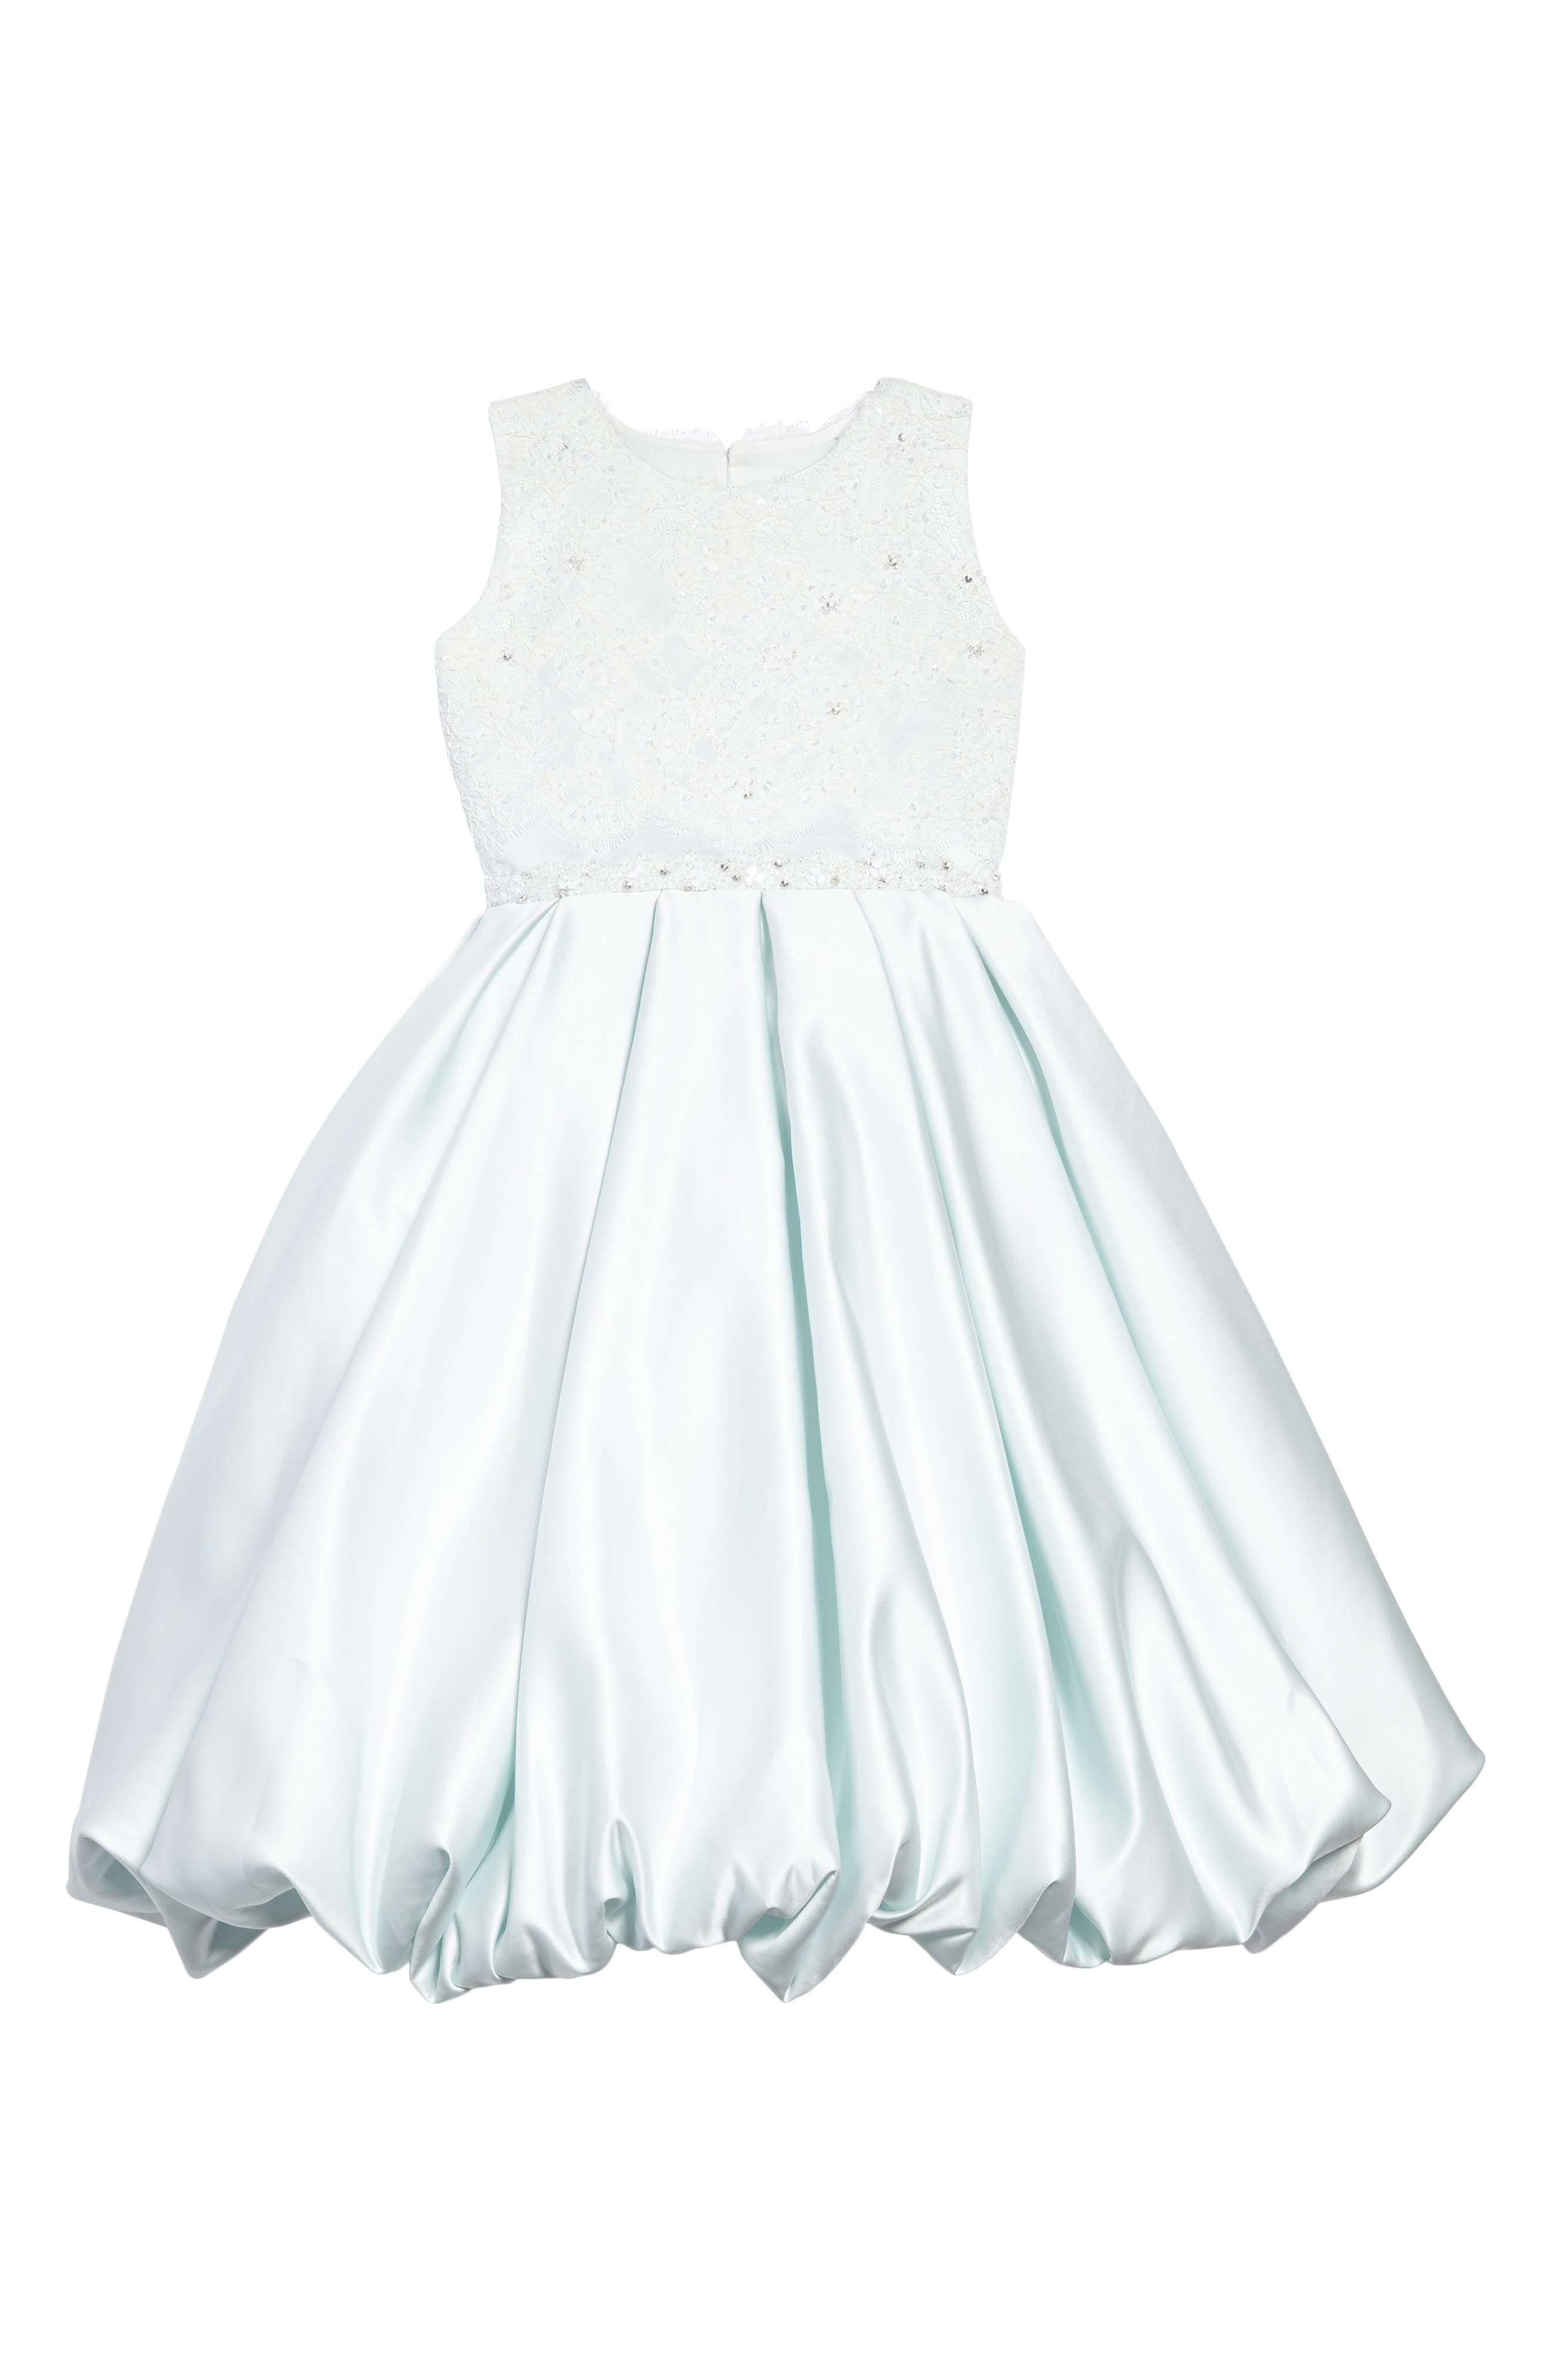 Beaded Lace & Satin First Communion Dress,                             Main thumbnail 1, color,                             Mist/ Ivory